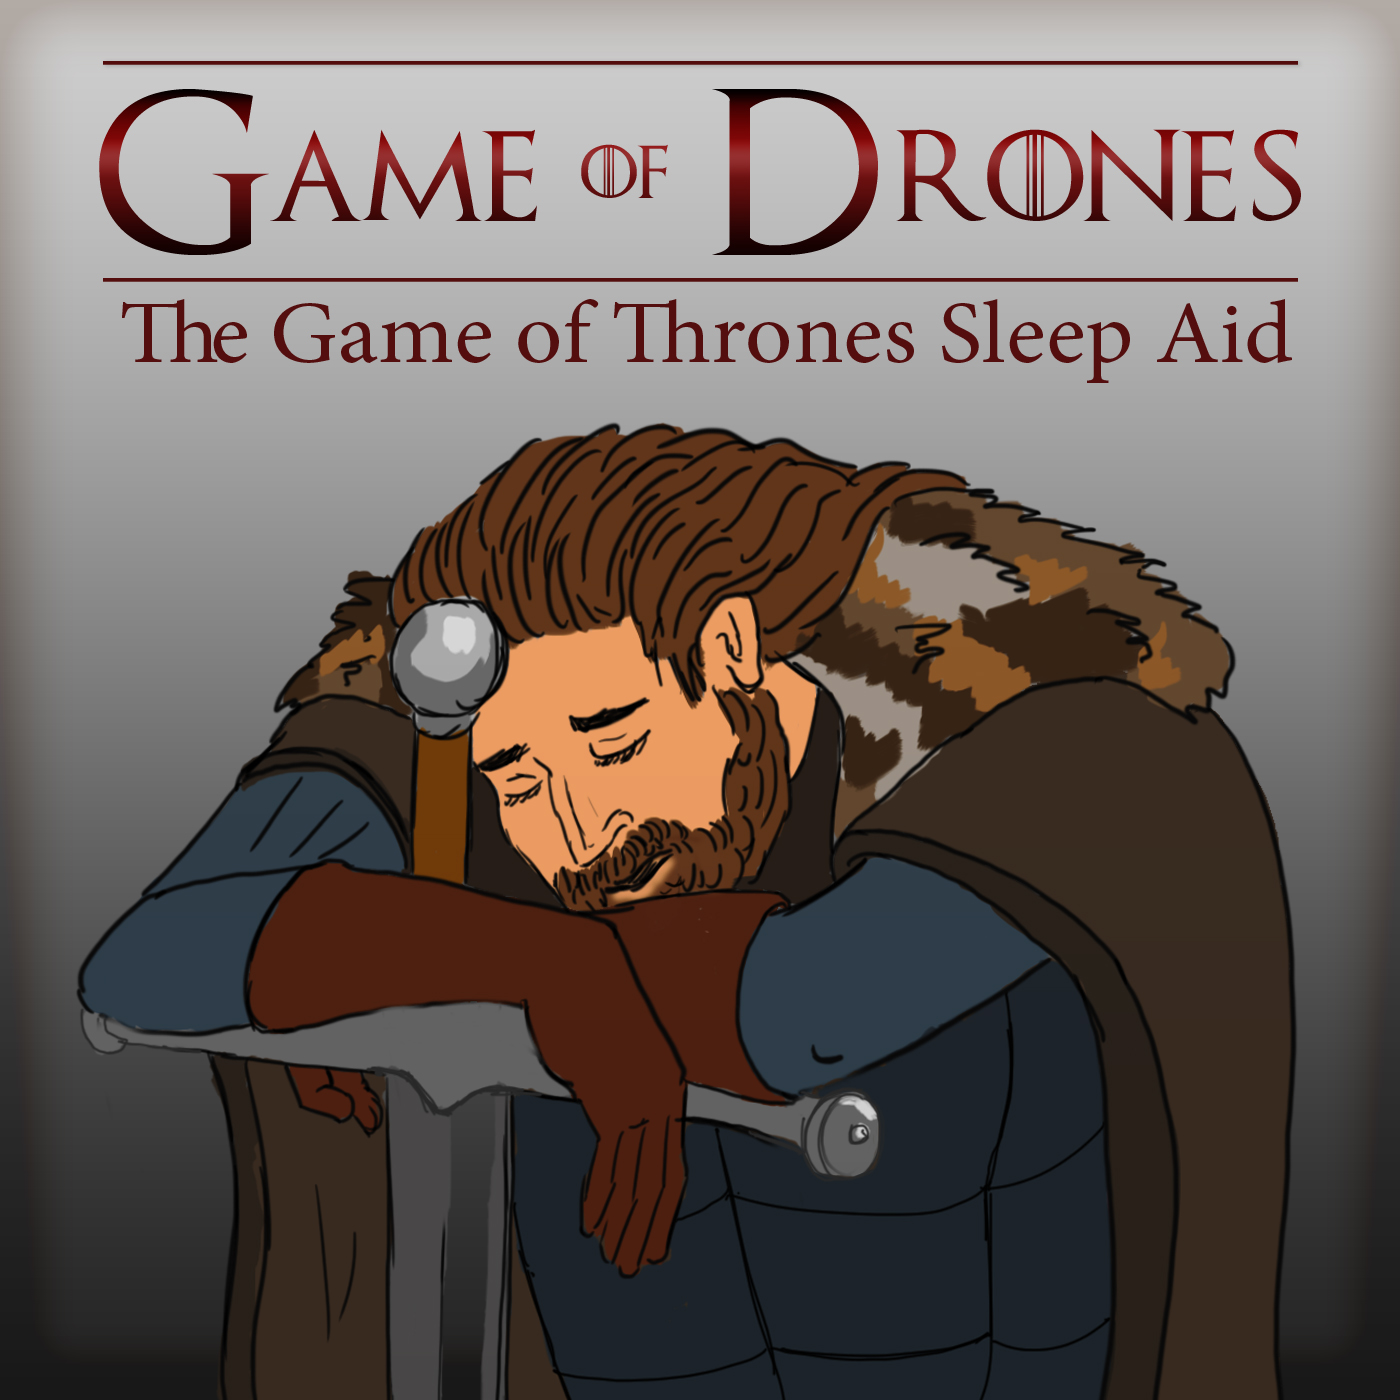 767 - A Knight of the Seven Kingdoms | Game of Drones S8 E2